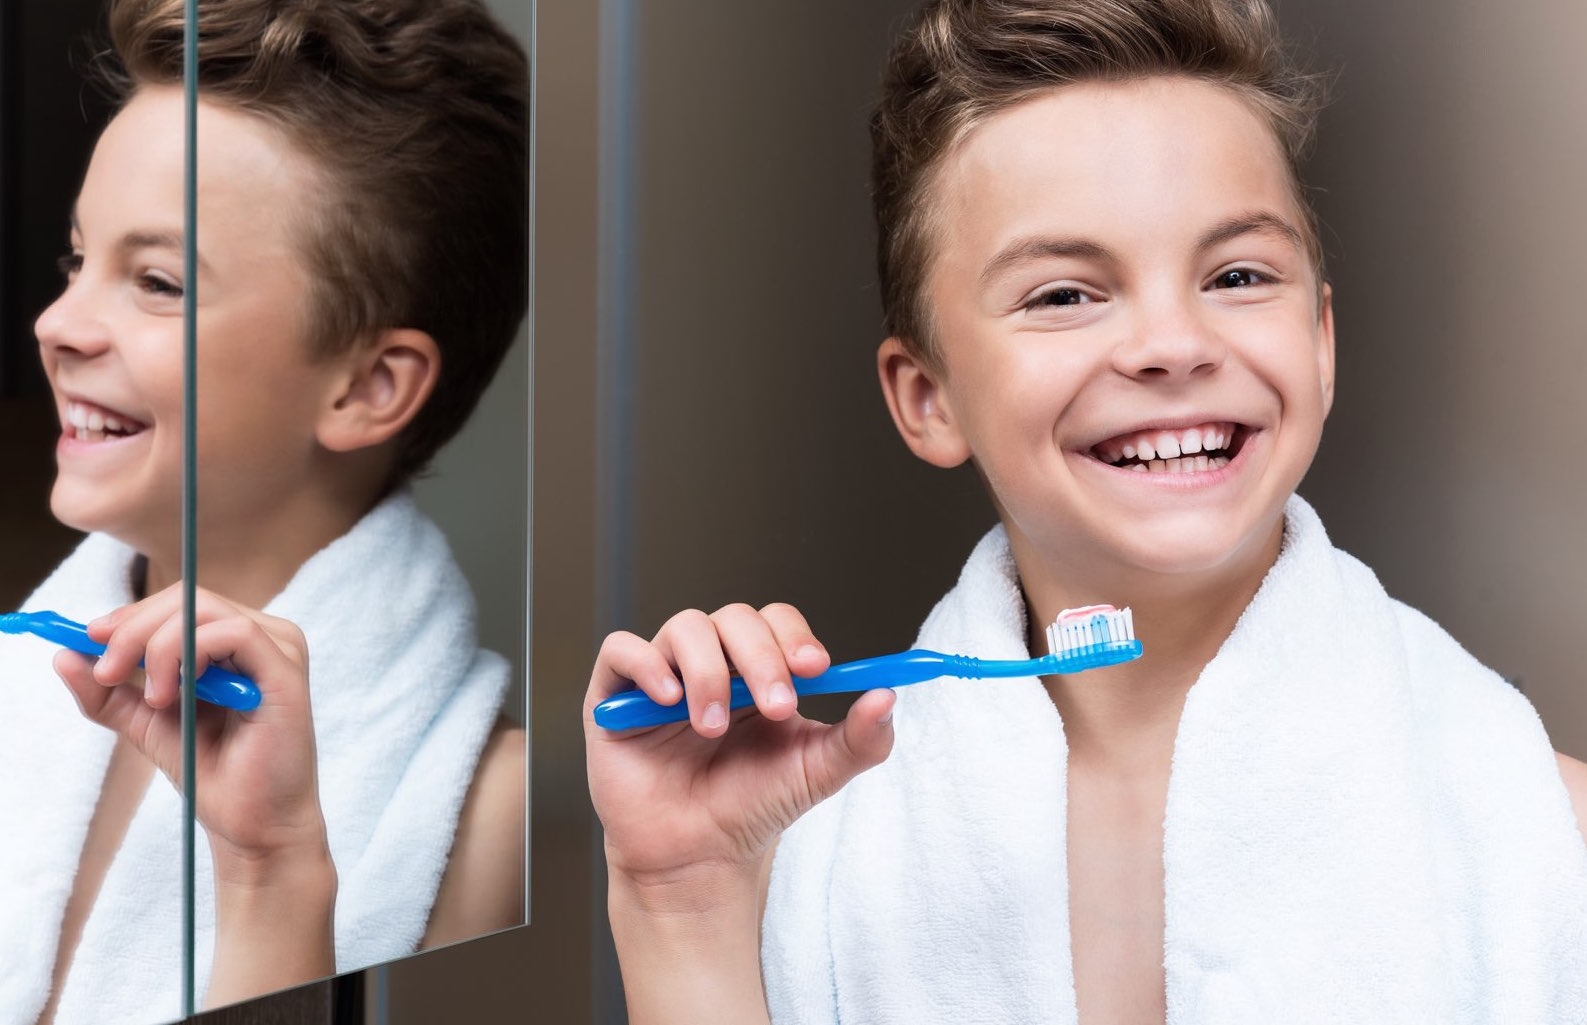 Are Electric Toothbrushes Better Than Manual Toothbrushes?